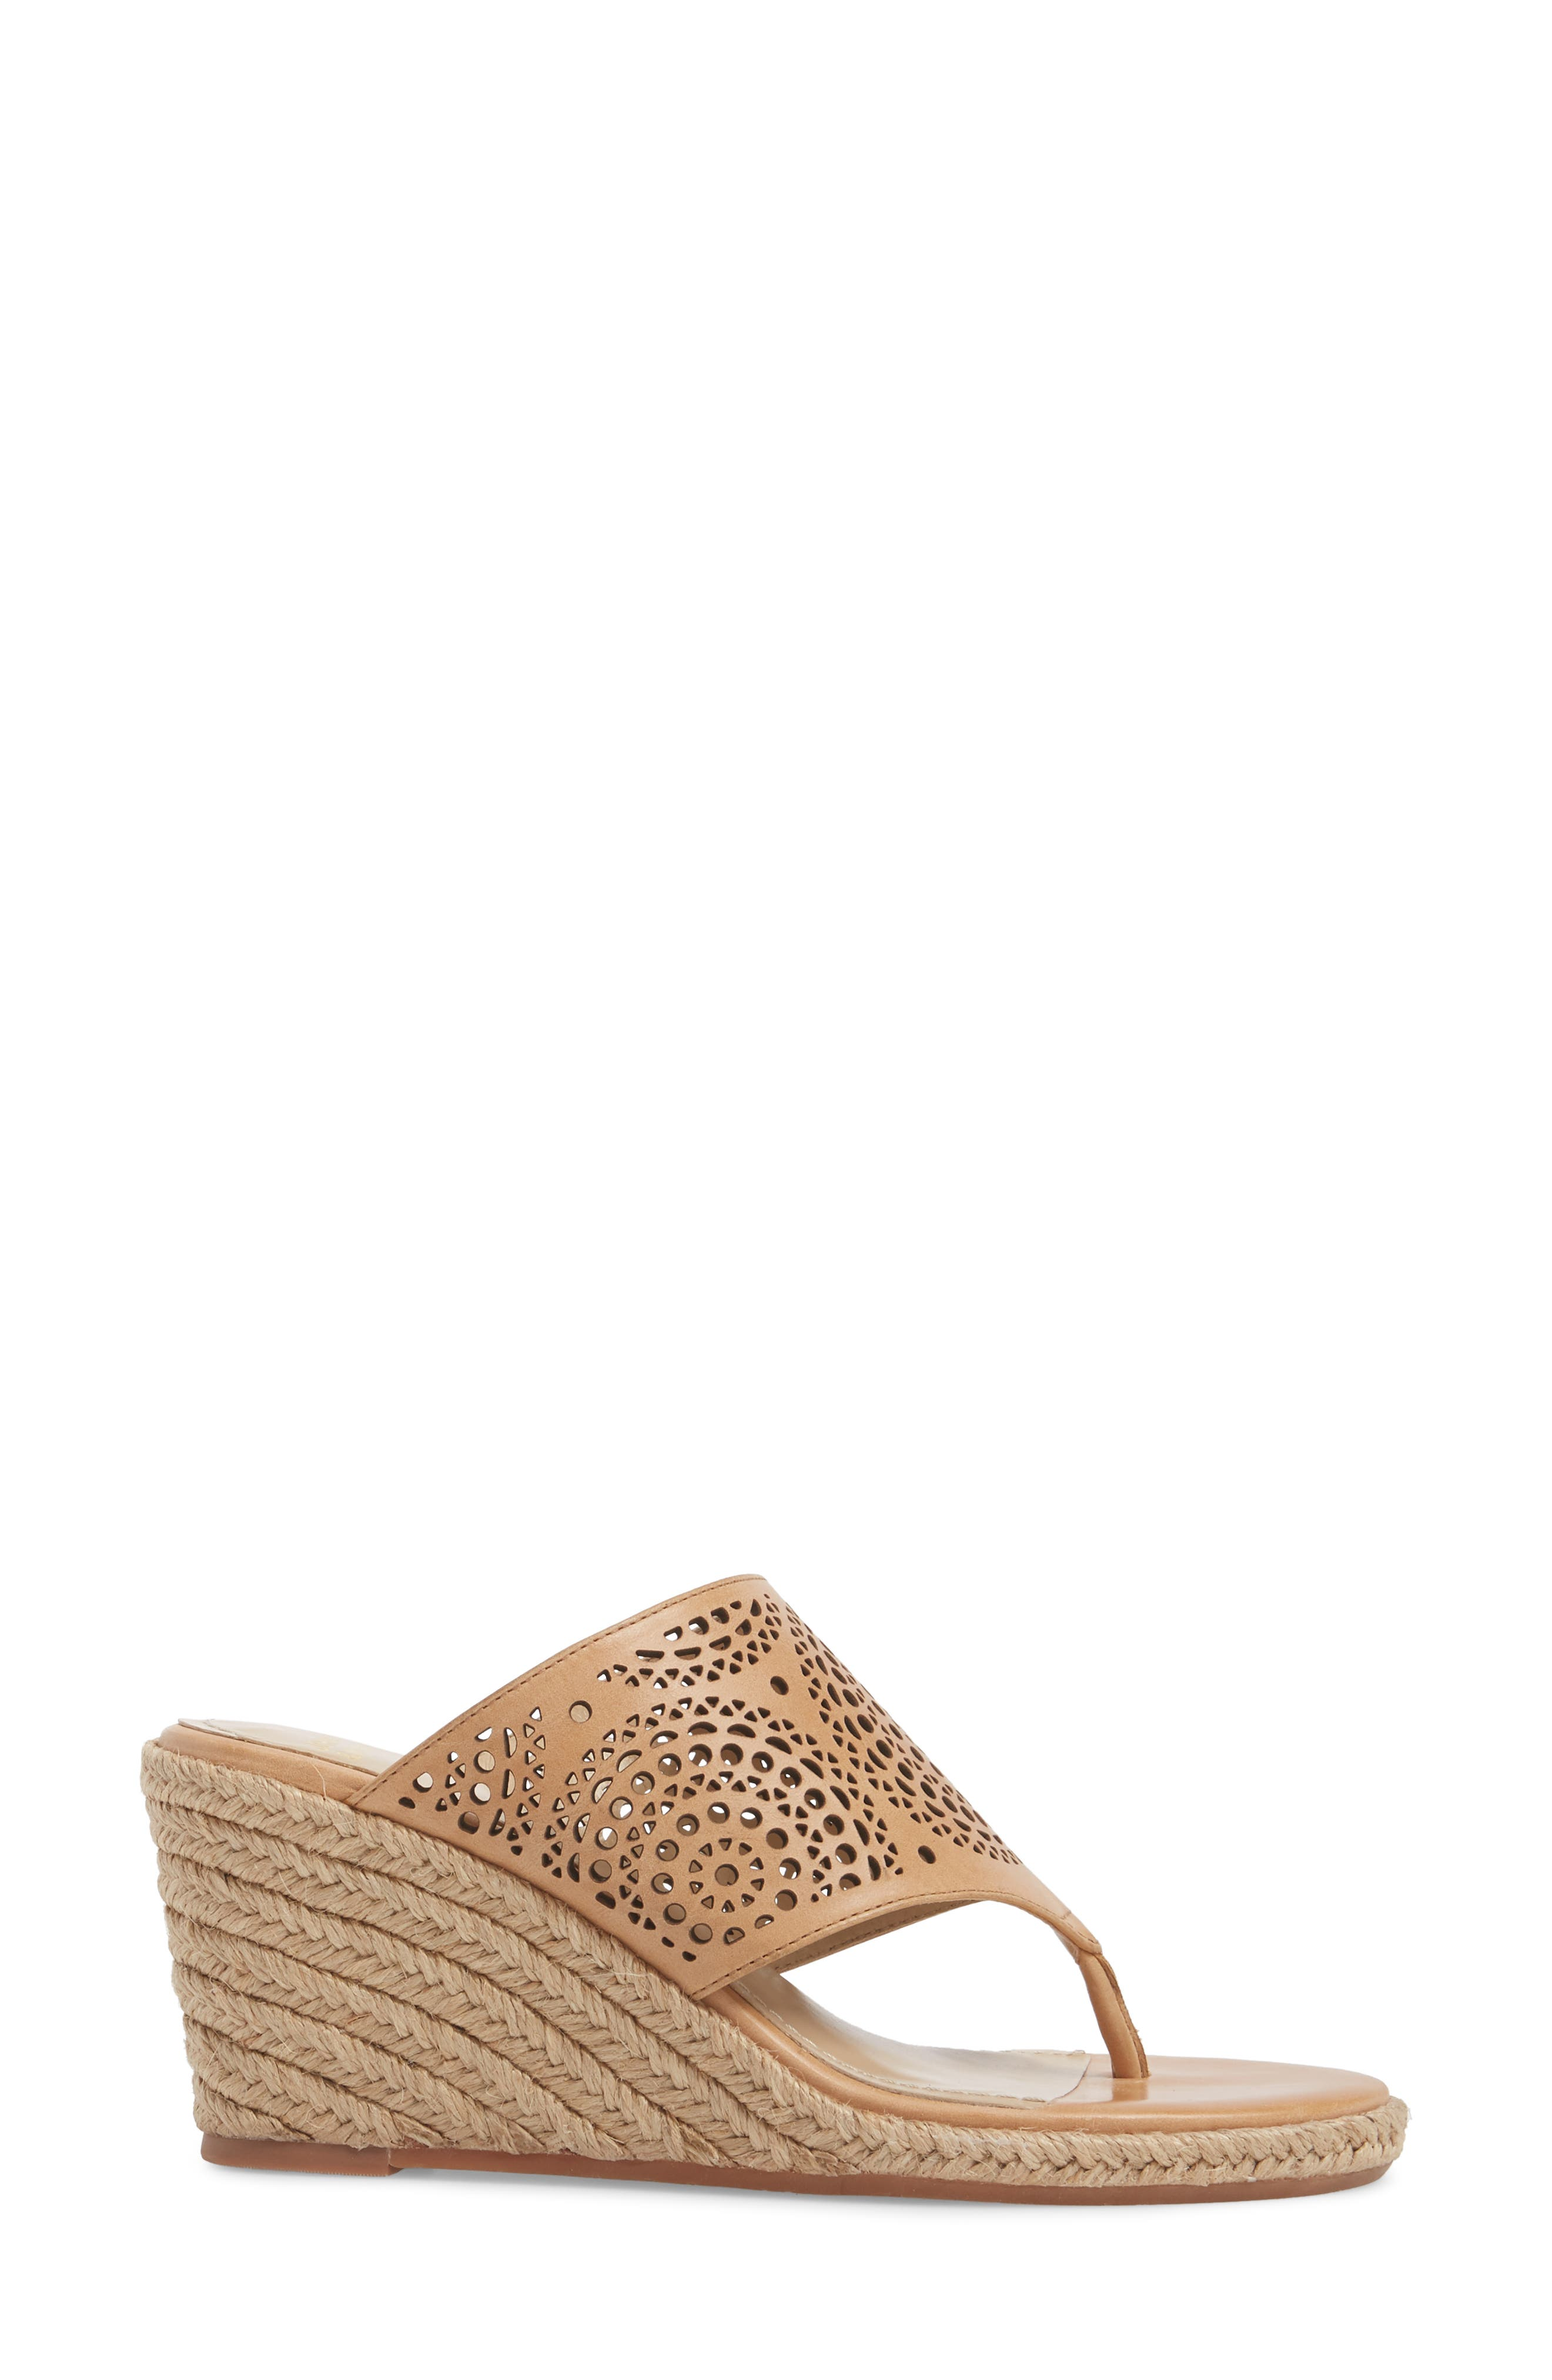 Gina Wedge Sandal,                             Alternate thumbnail 3, color,                             Tan Leather